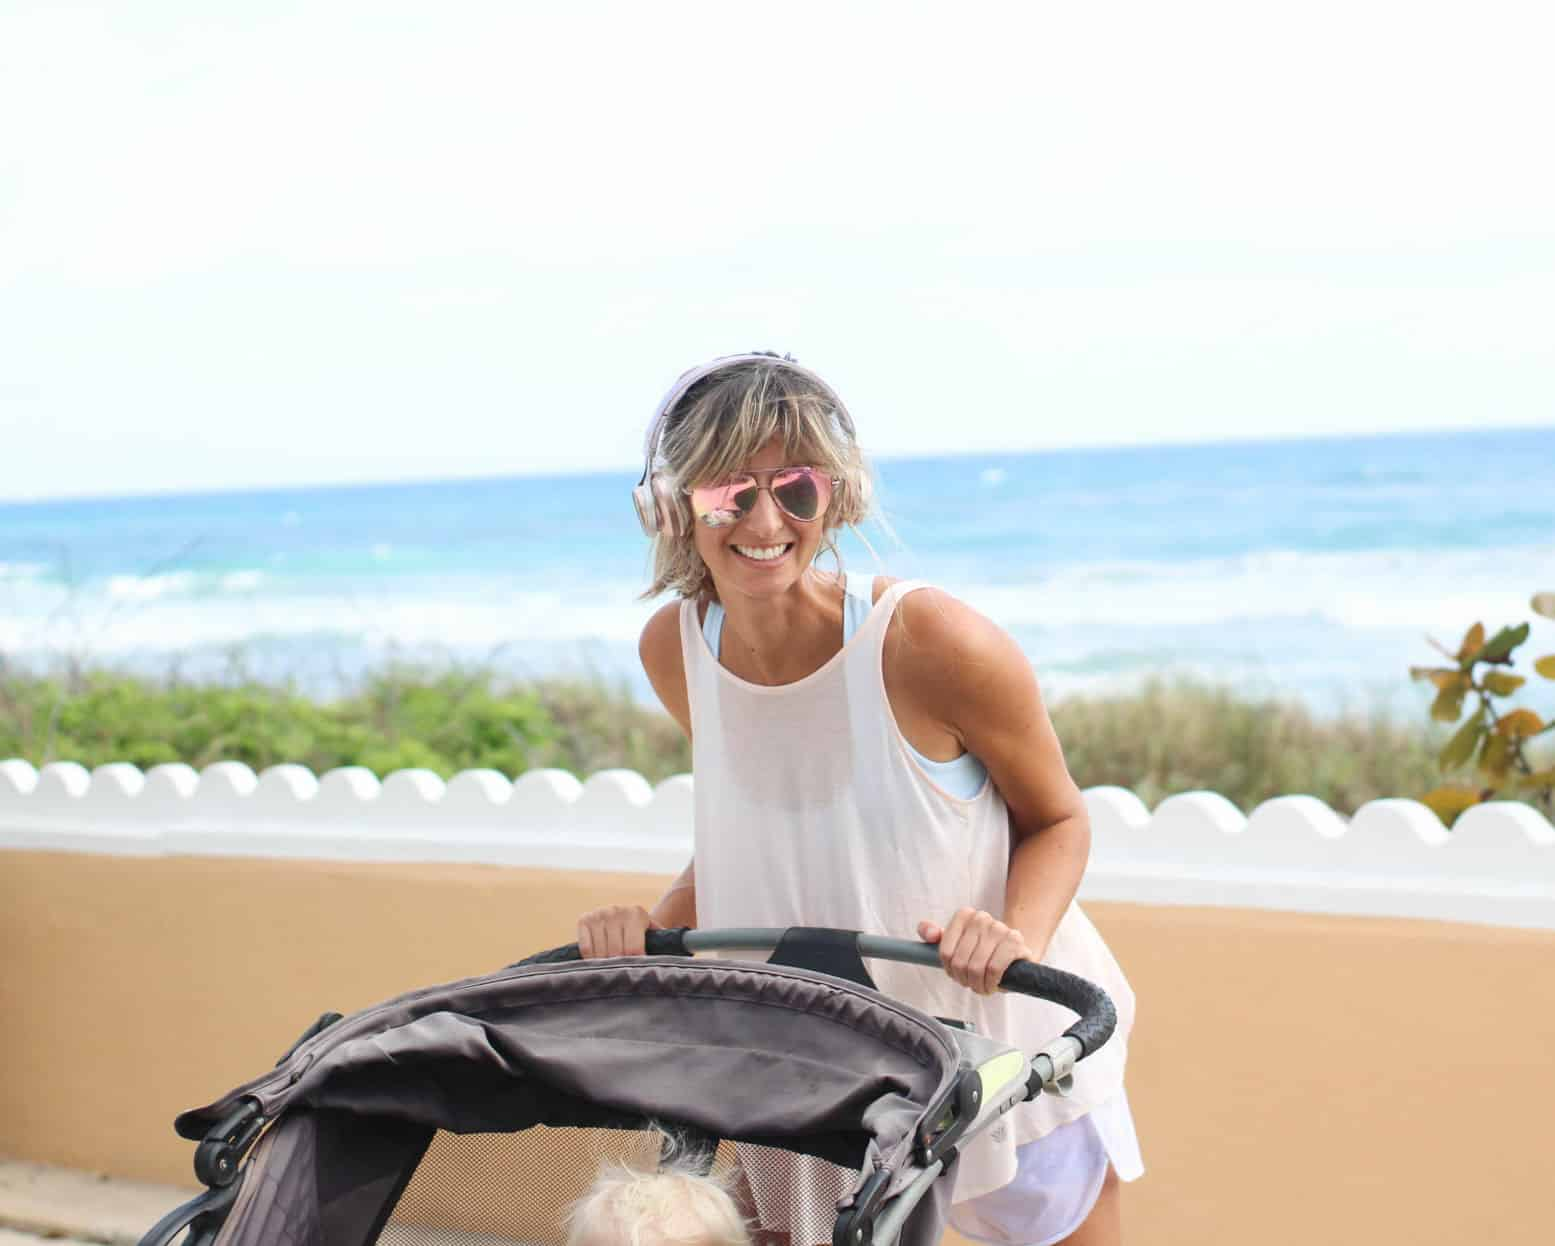 How to Train for a 5K with A Stroller